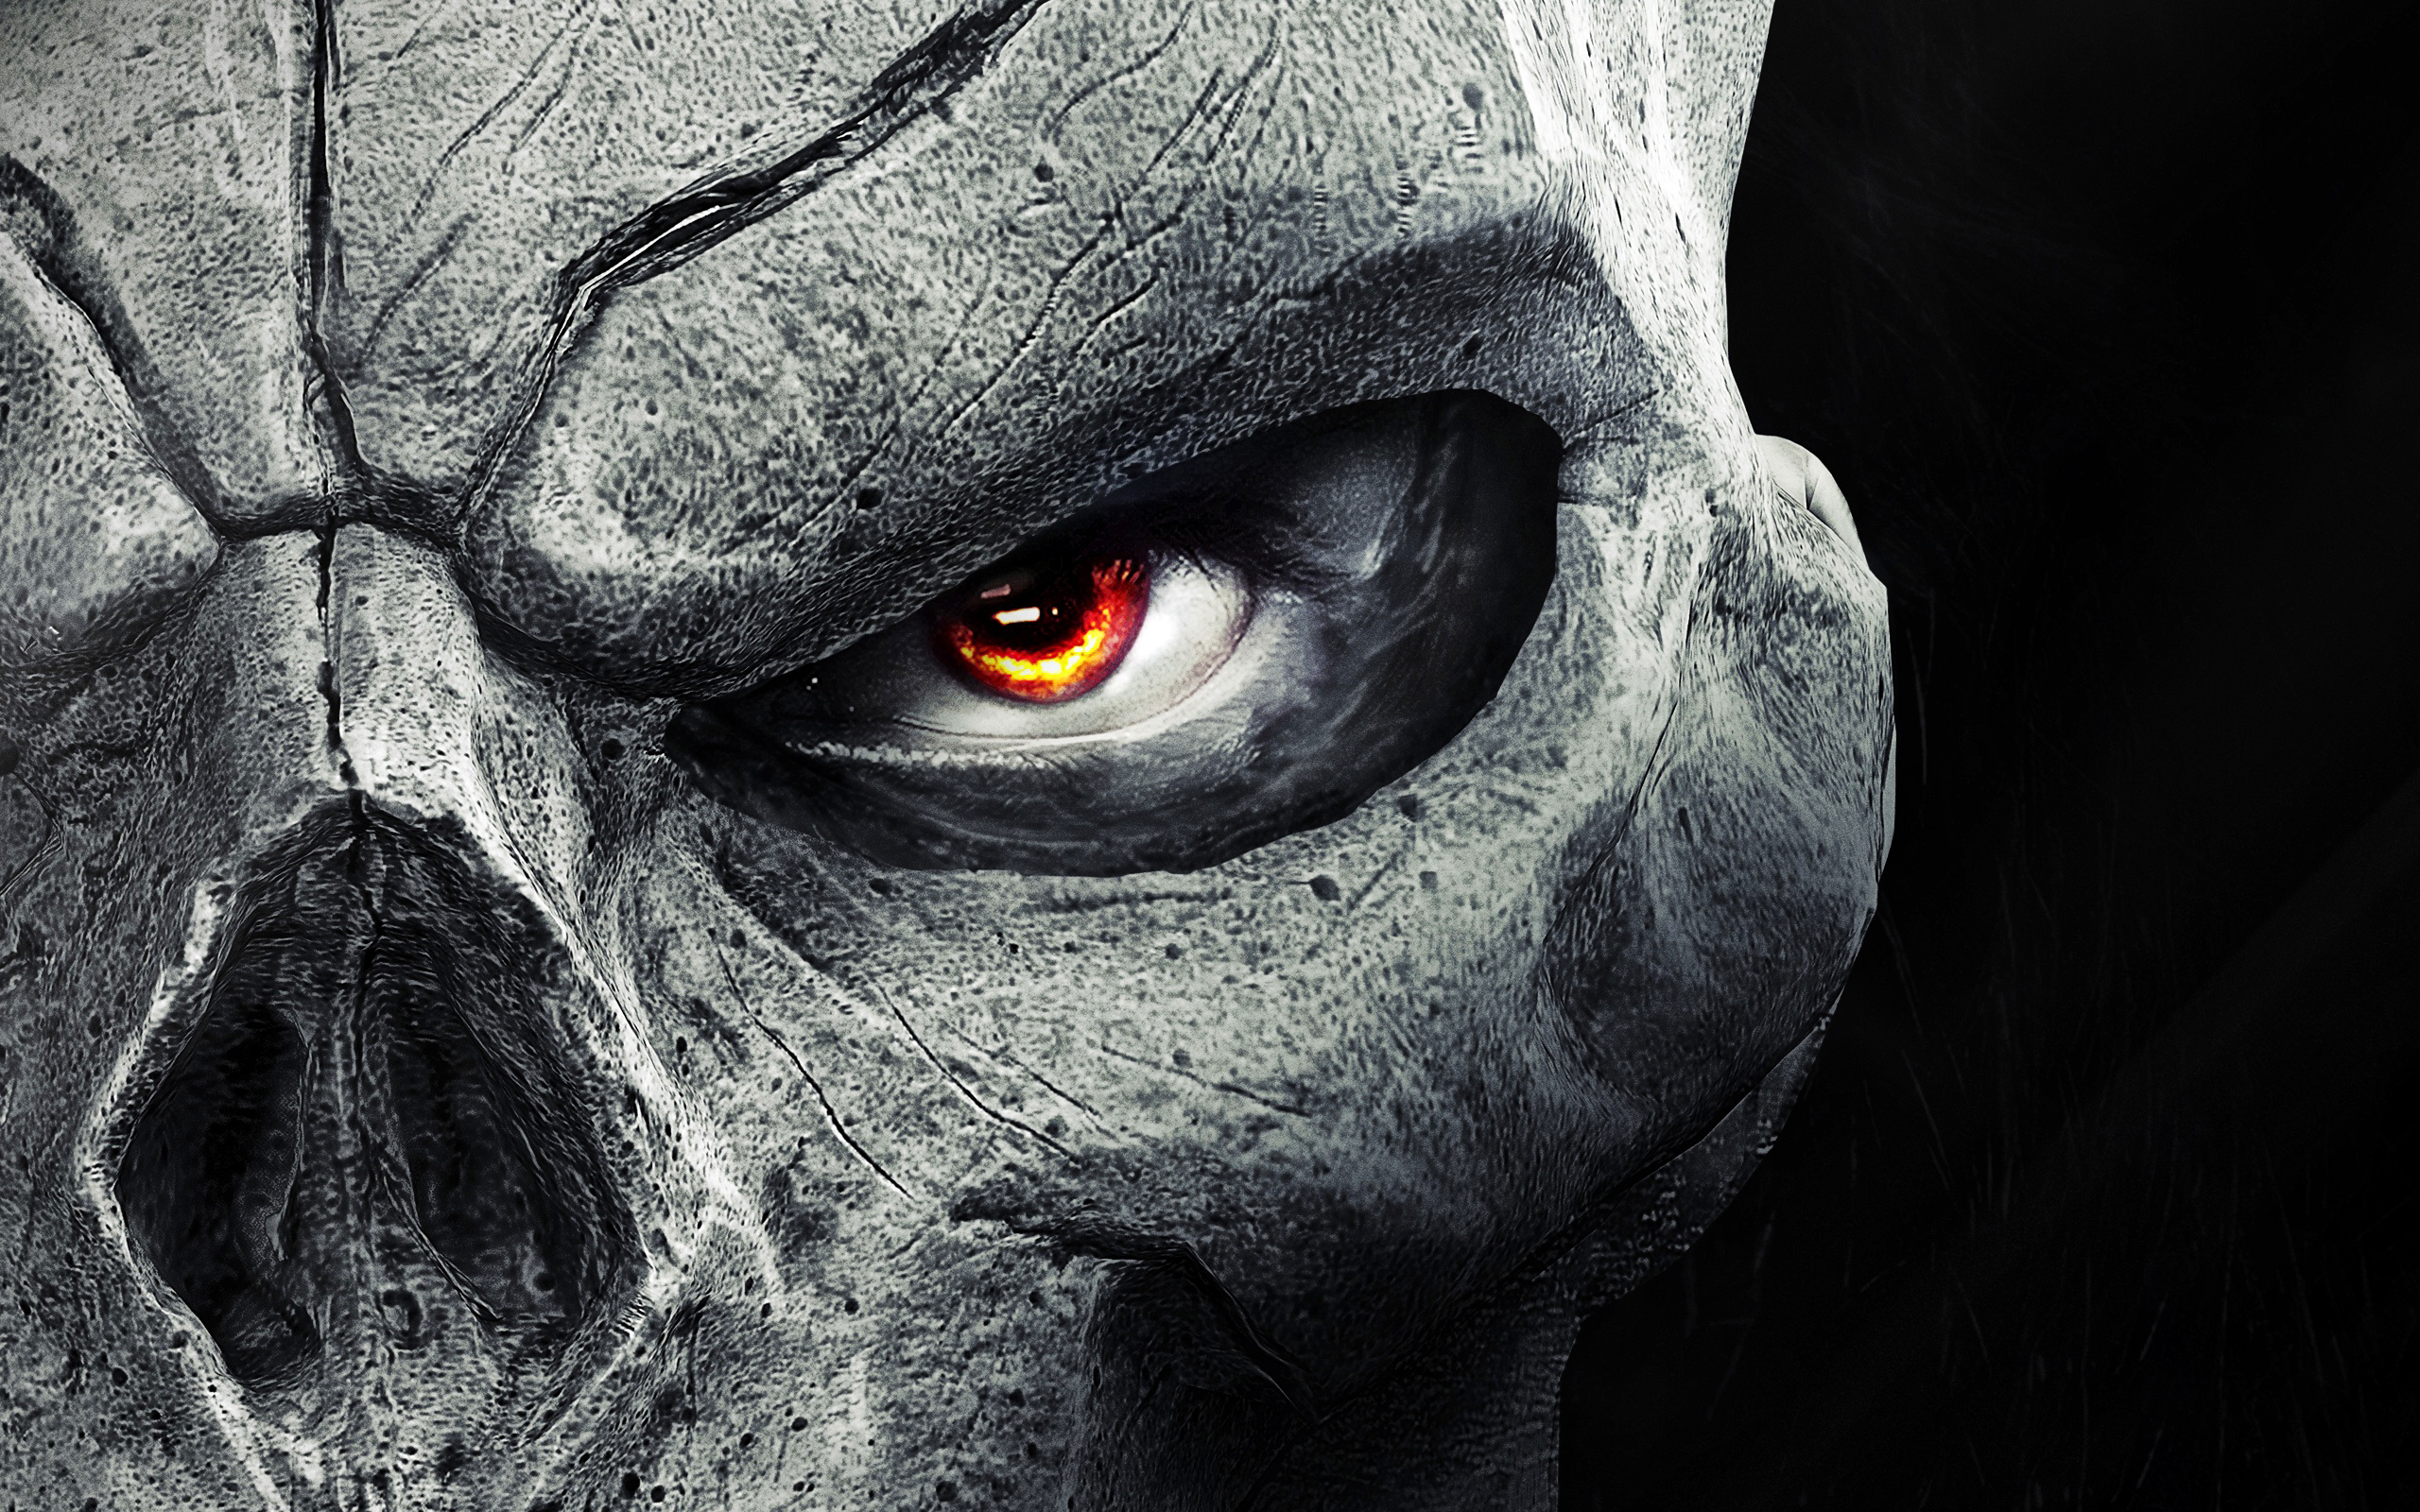 skull wallpapers scary - hd desktop wallpapers | 4k hd